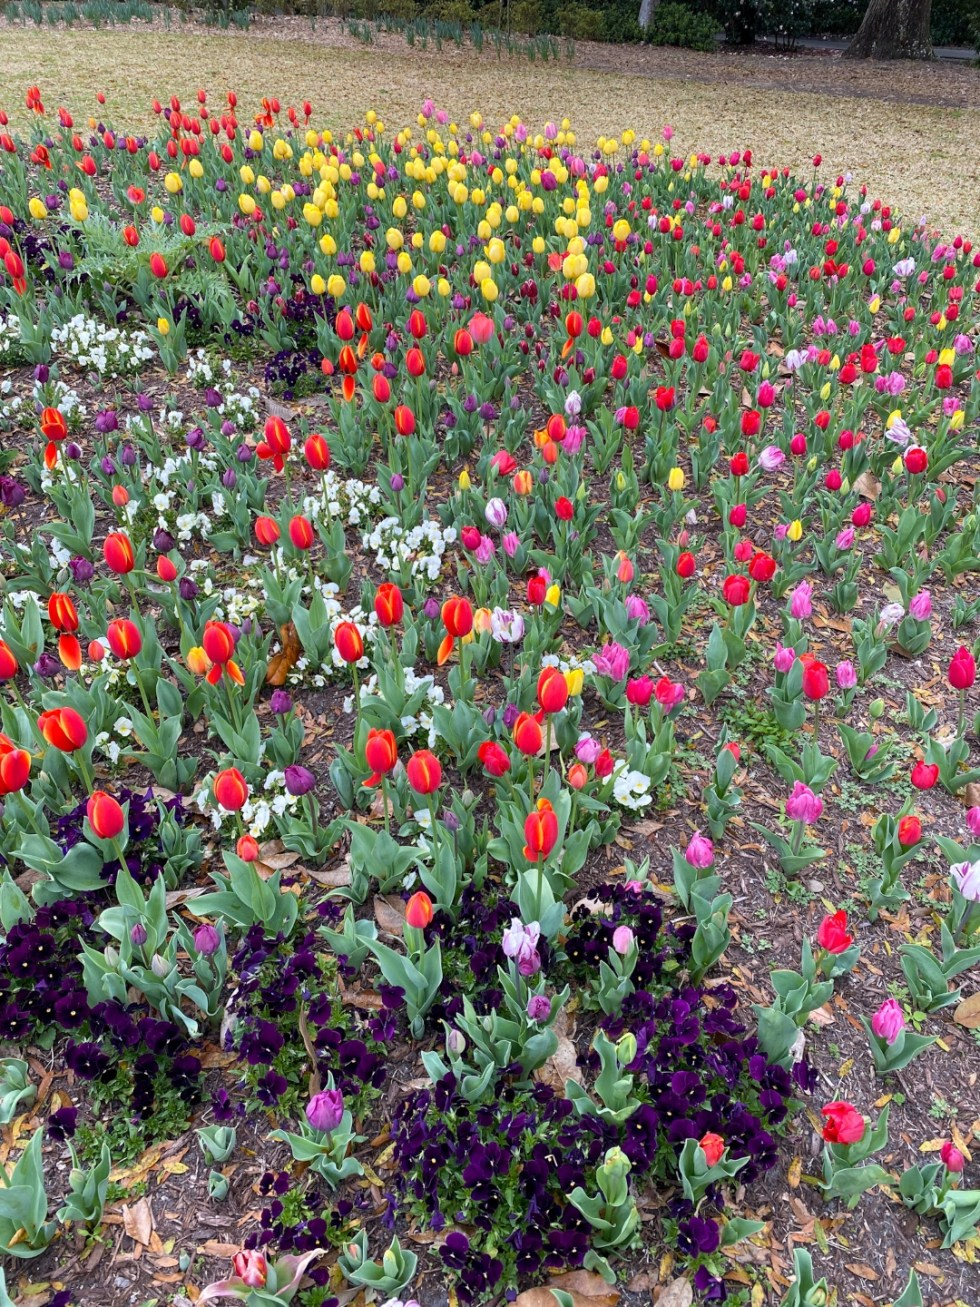 A Spring Weekend in Wilmington, NC: the Best Things to Do - I'm Fixin' To - @imfixintoblog |Weekend in Wilmington by popular NC travel blog, I'm Fixin' To: image of purple, pink, red and yellow tulips.